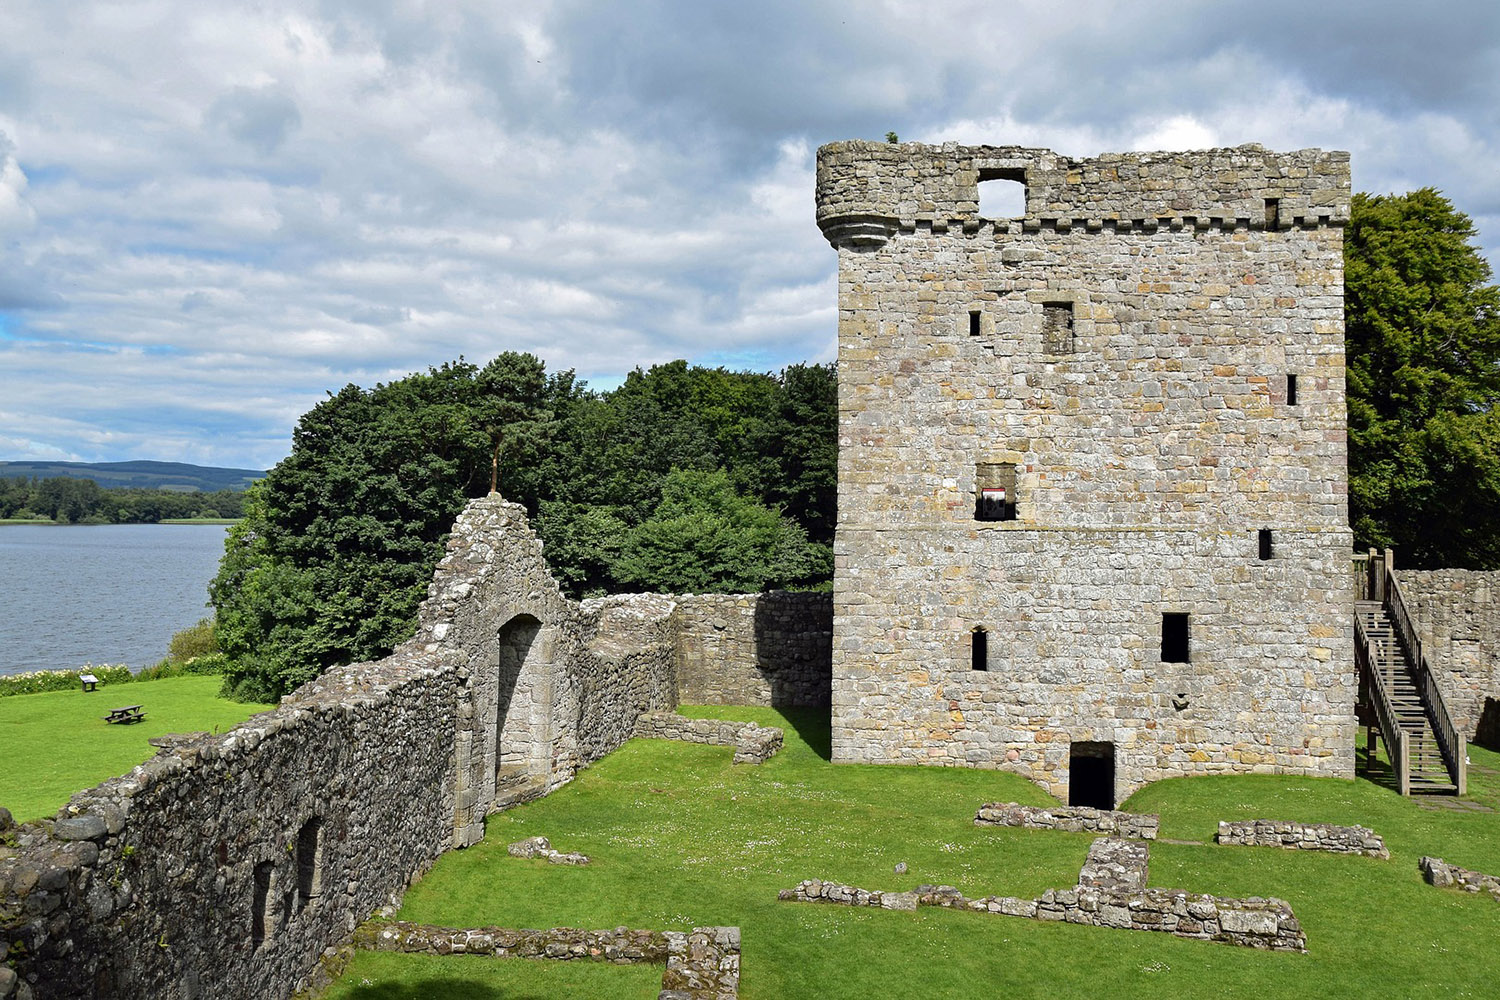 Loch Leven Castle, a highlight of our Mary Queen of Scots tour